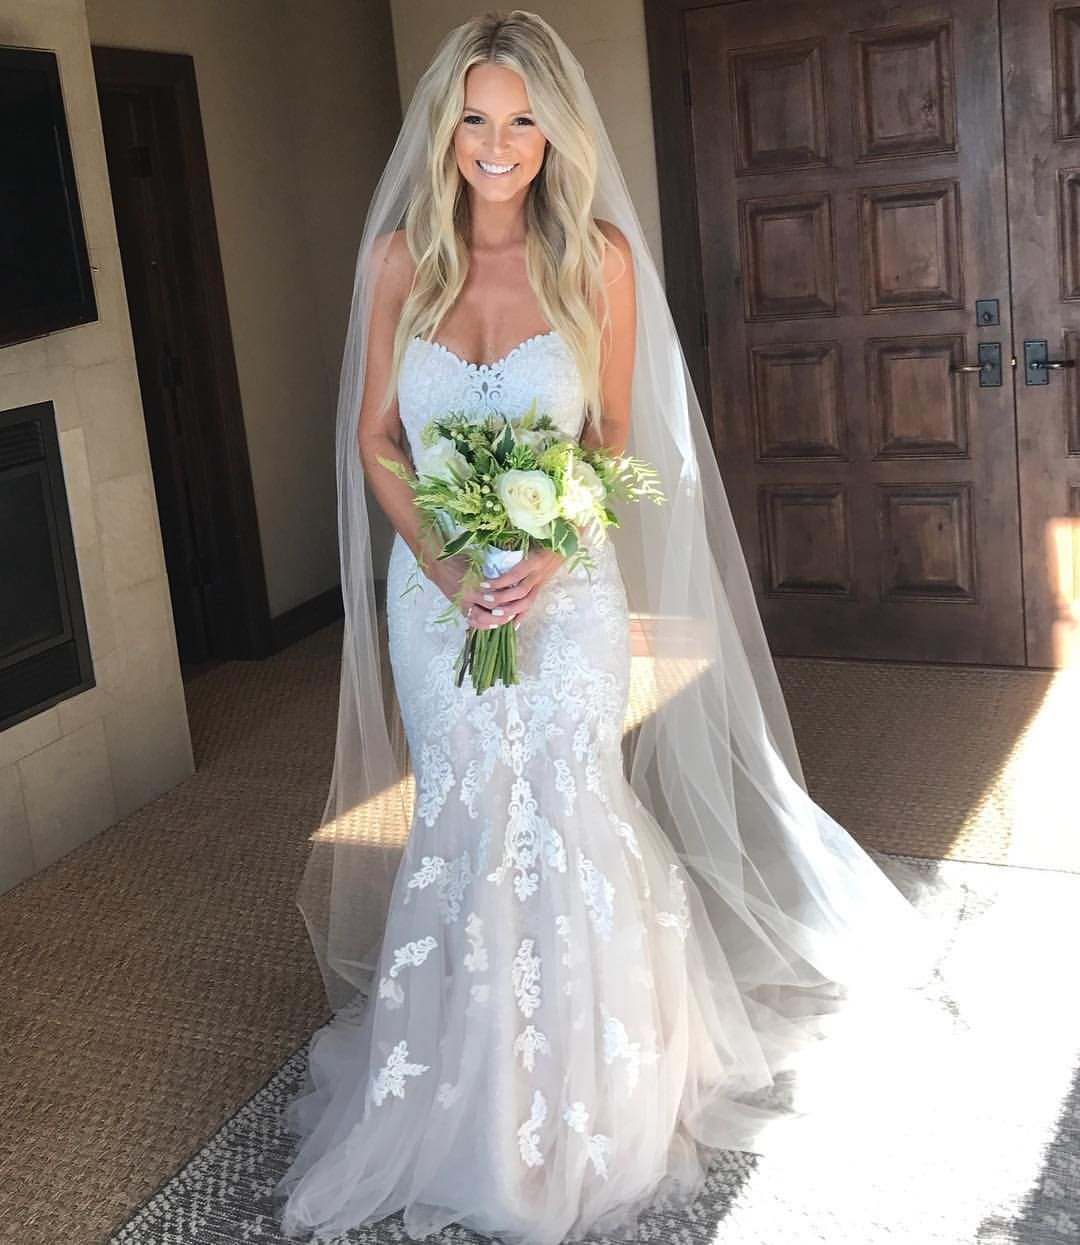 Beautiful blonde bride - long beach waves hairstyle | One Day ...